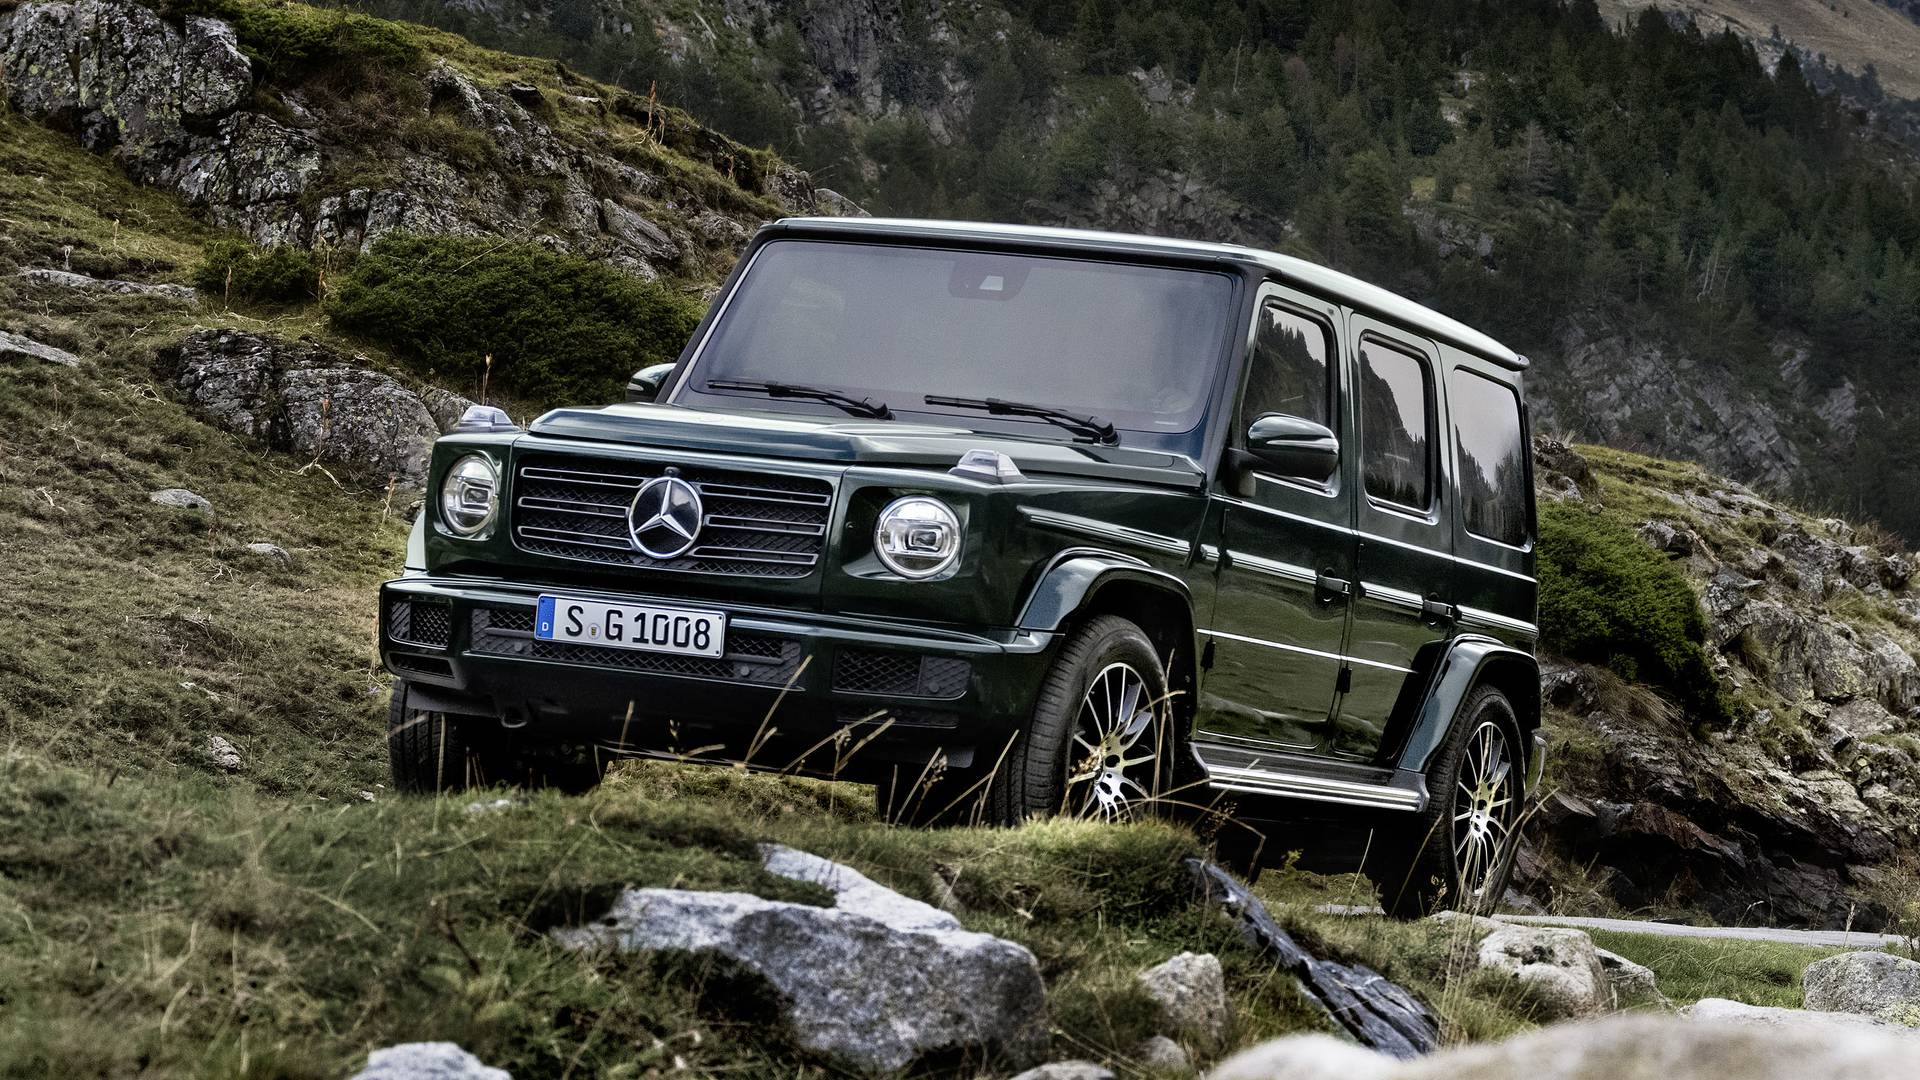 New G Class The Jewel Of The Mercedes Line Up Says Company